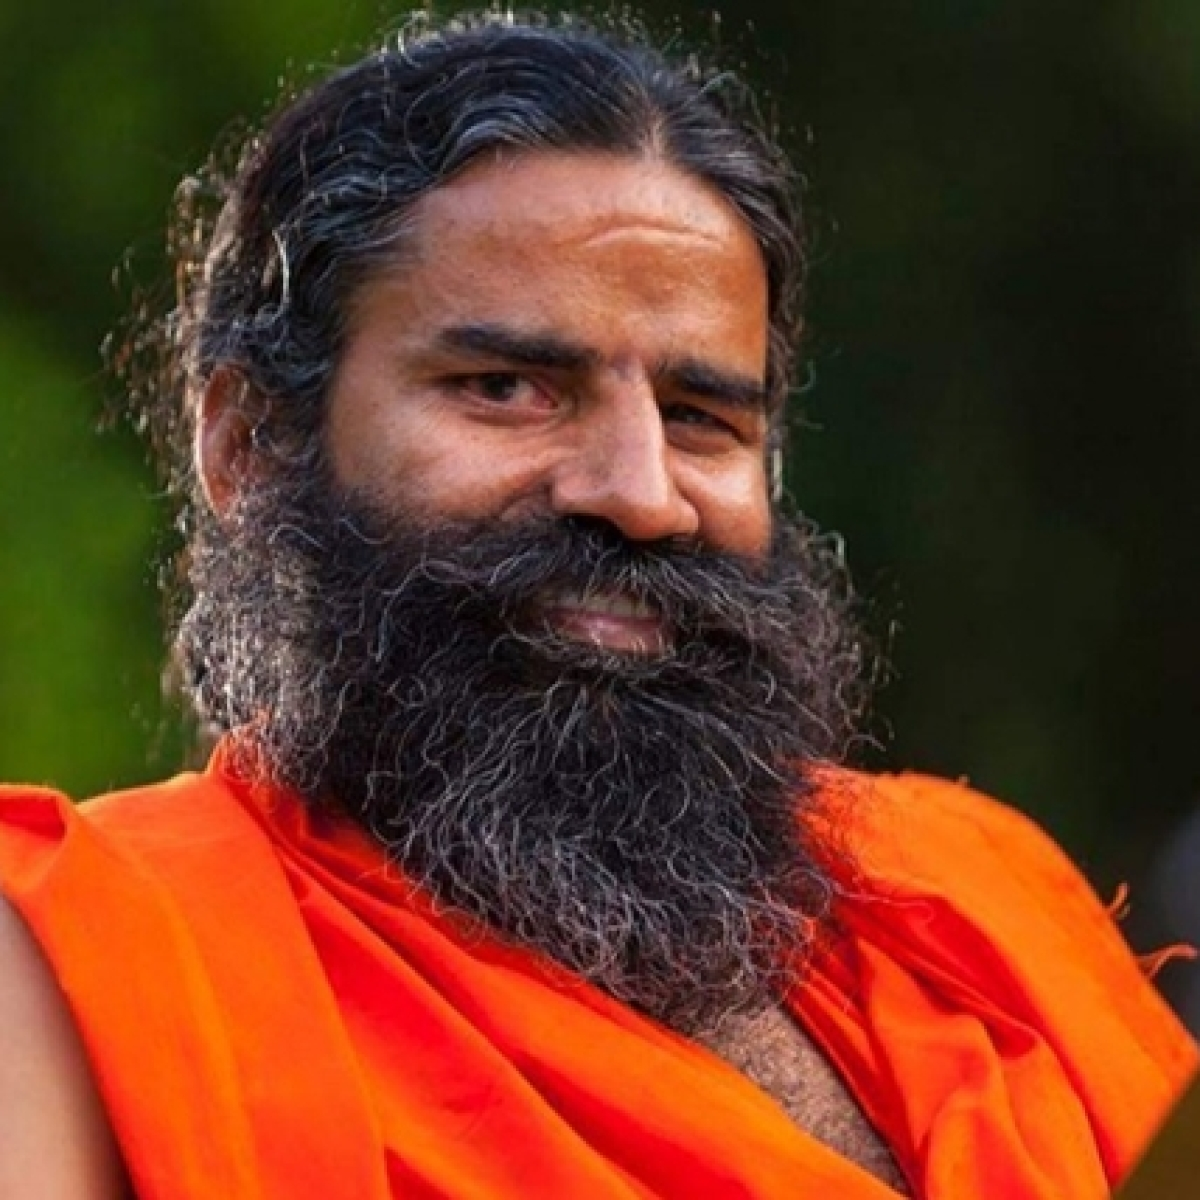 Ayurvedic smoke, coronil tablets and more: Patanjali's COVID-19 hospital in Haridwar spark social media outrage